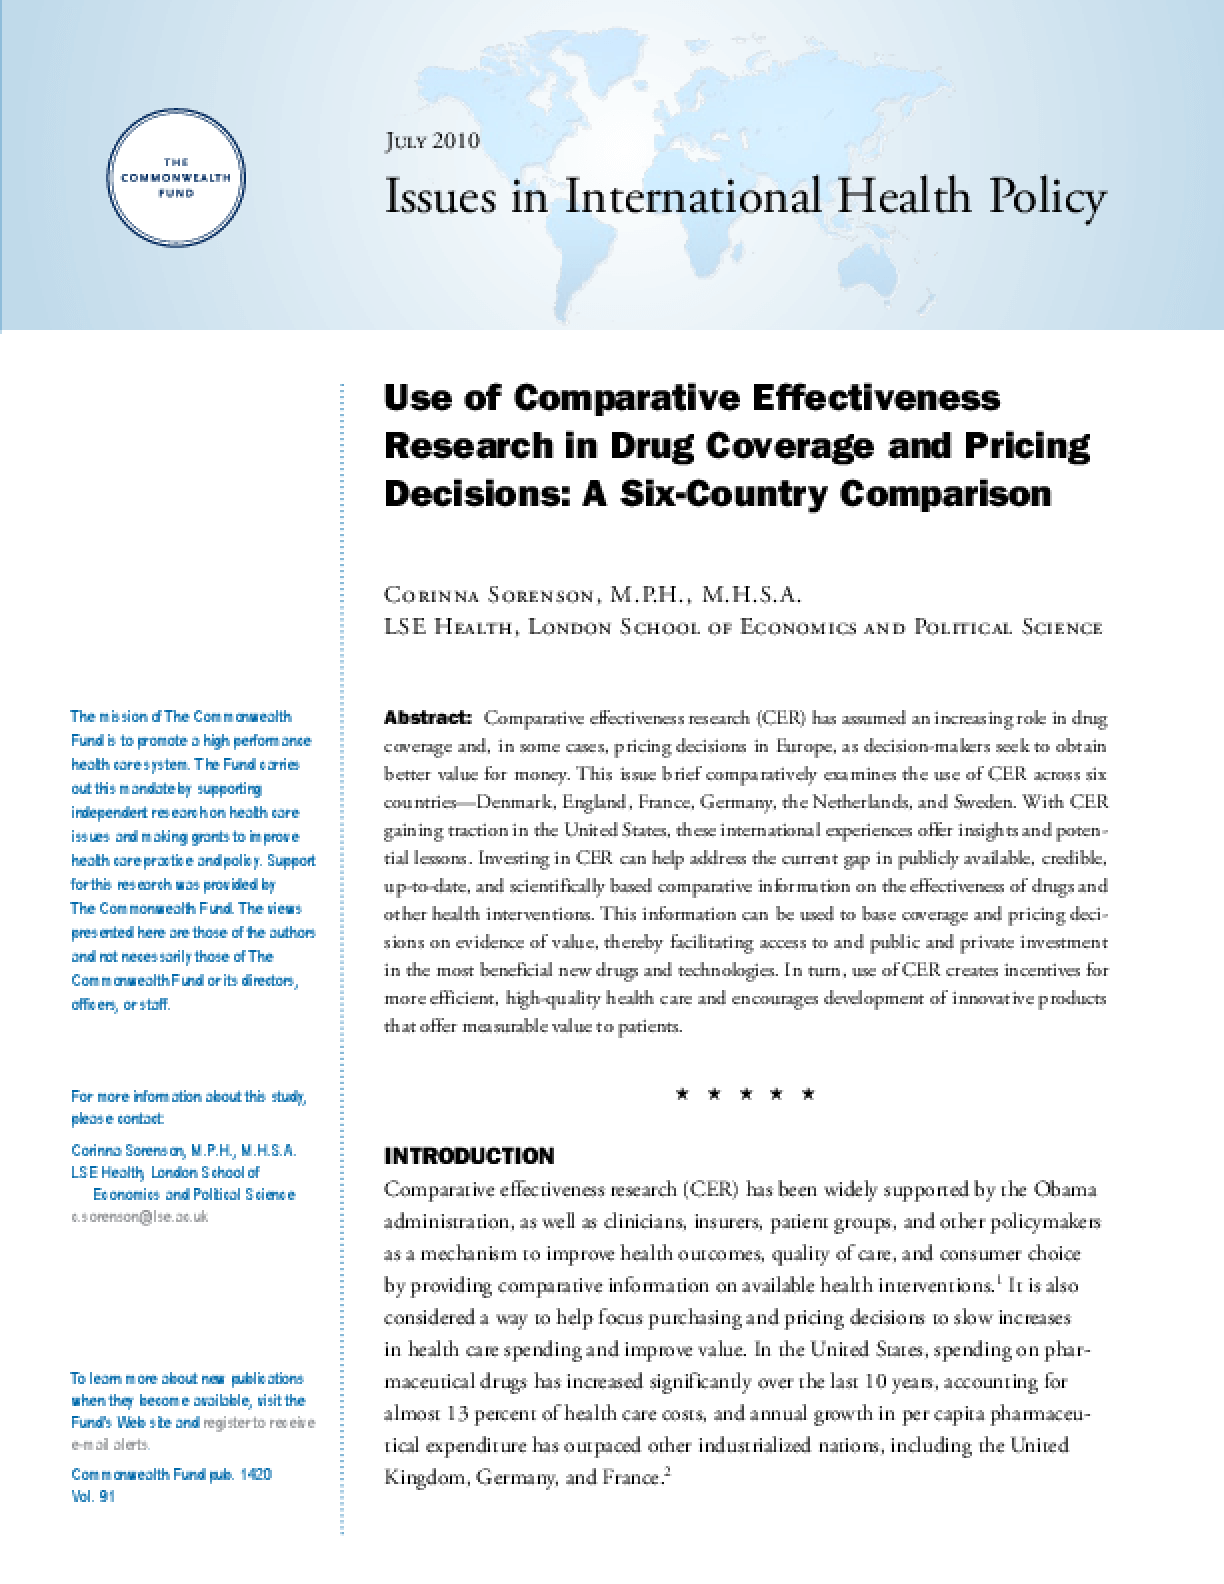 Use of Comparative Effectiveness Research in Drug Coverage and Pricing Decisions: A Six-Country Comparison